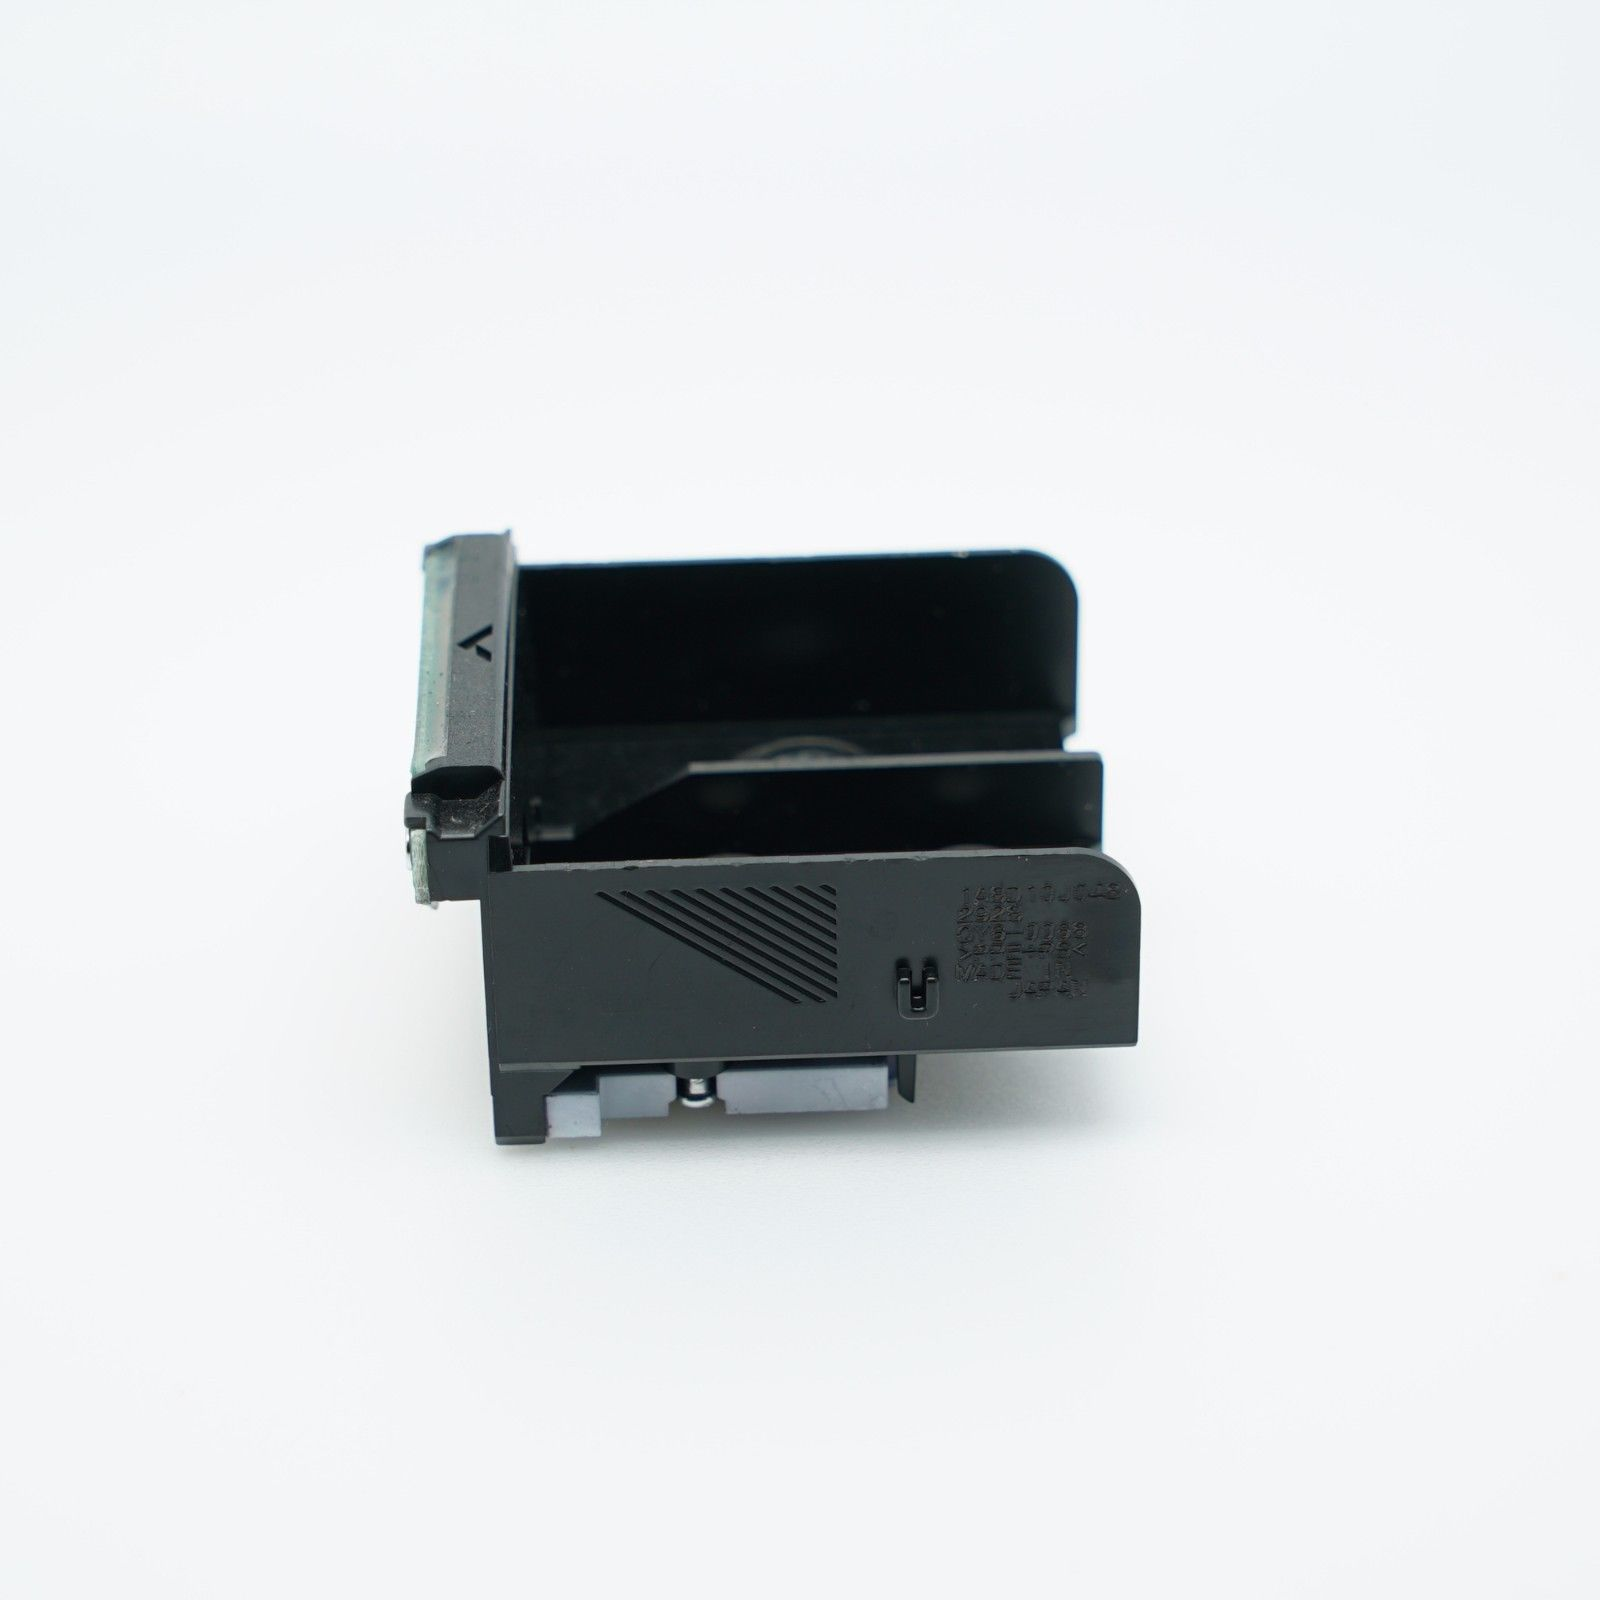 QY6-0068 QY6-0068-000 Printhead Print Head FOR CANON PIXMA iP100 iP110 print head qy6 0042 printhead for canon i560 i850 ip3000 mp730 ix5000